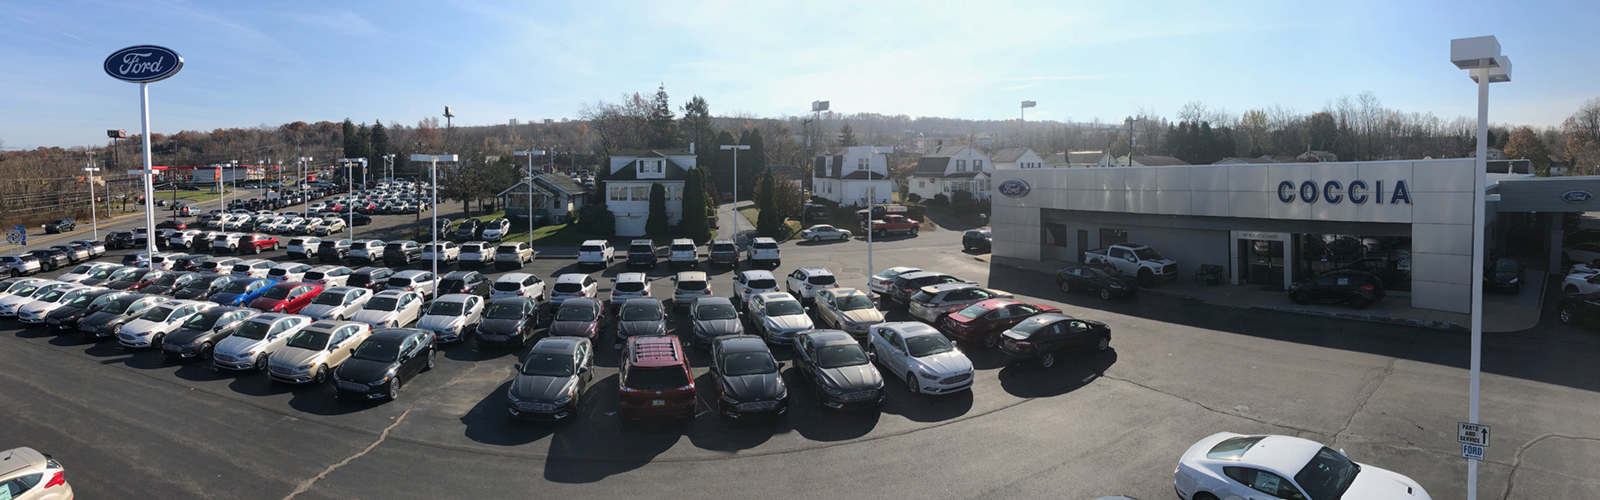 Shop New and Used Ford Cars, Trucks and SUVs near Wilkes-Barre